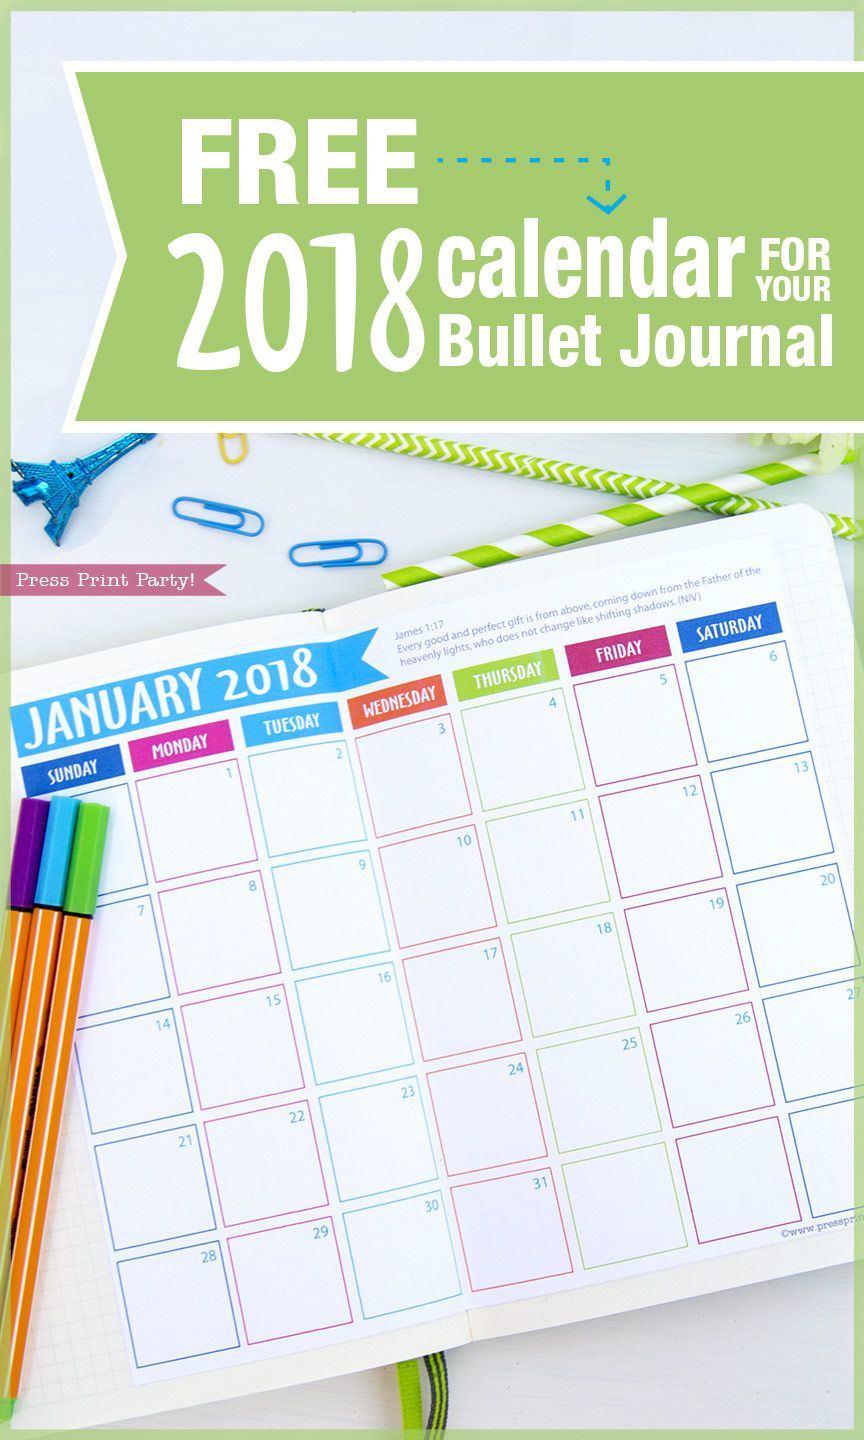 Free 2018 Calendar For Your Bullet Journal By Press Print Party